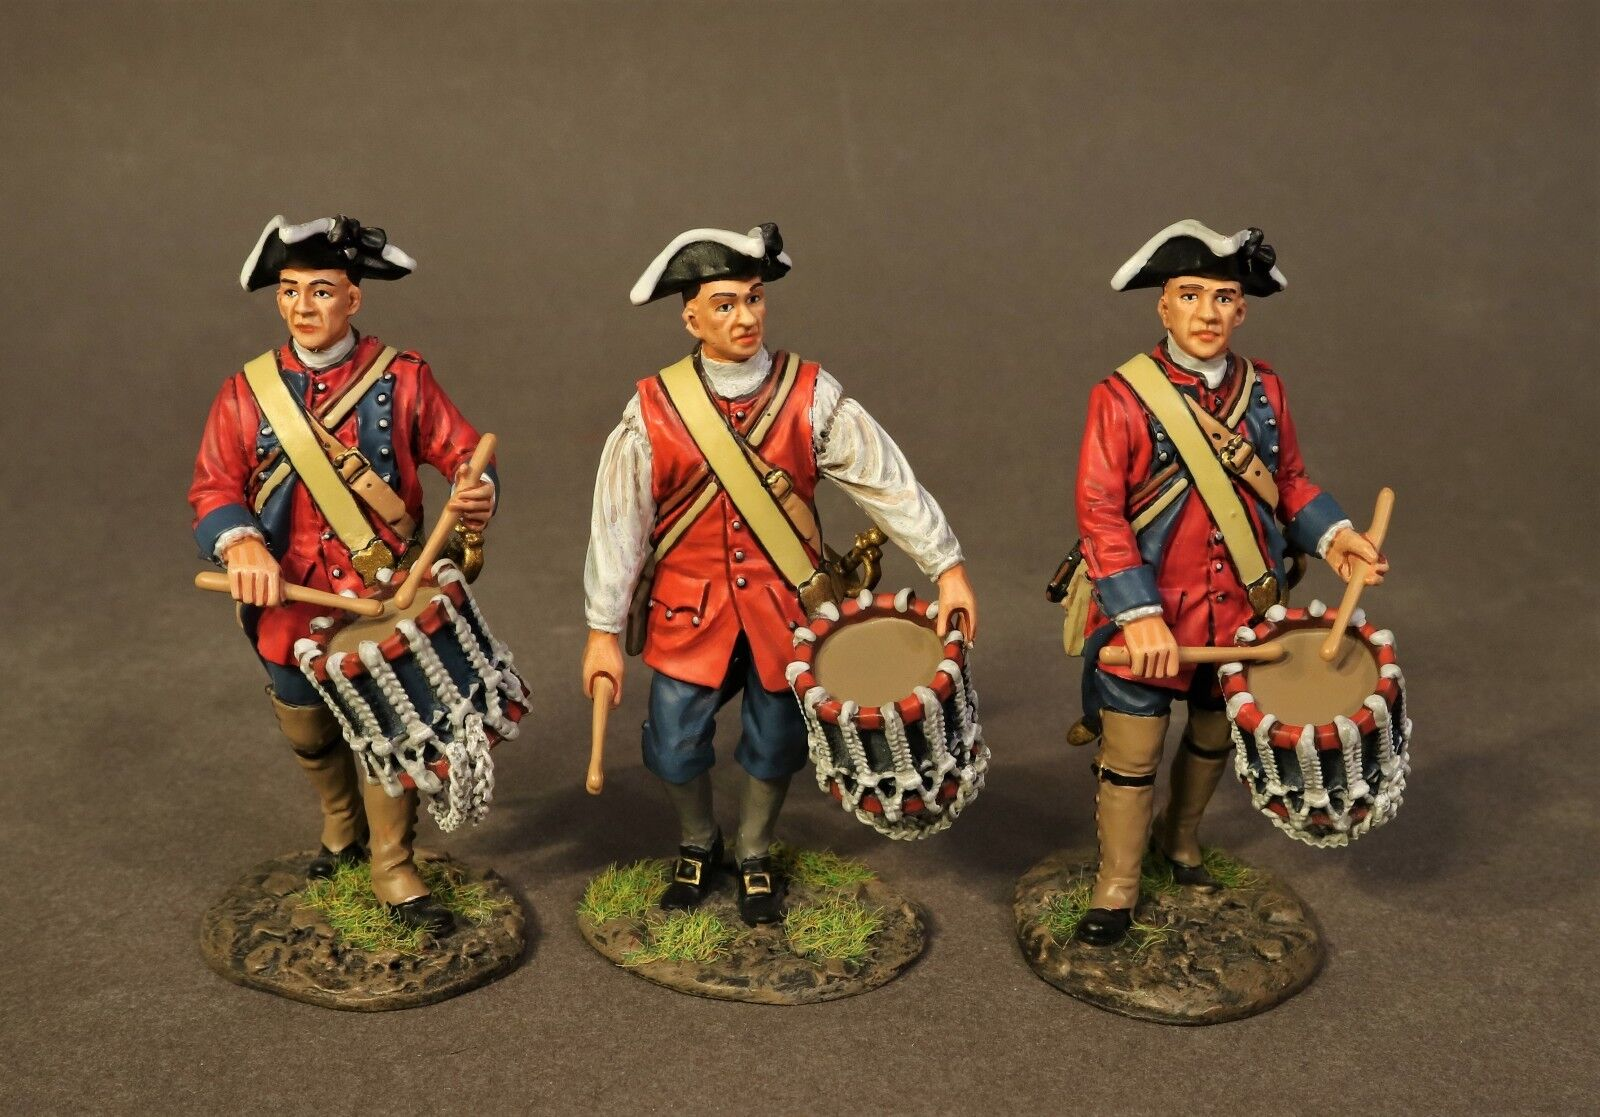 JOHN JENKINS RAID ON ST. FRANCIS RRB60-09D 60TH ROYAL AMERICAN 3 DRUMMER SET MIB